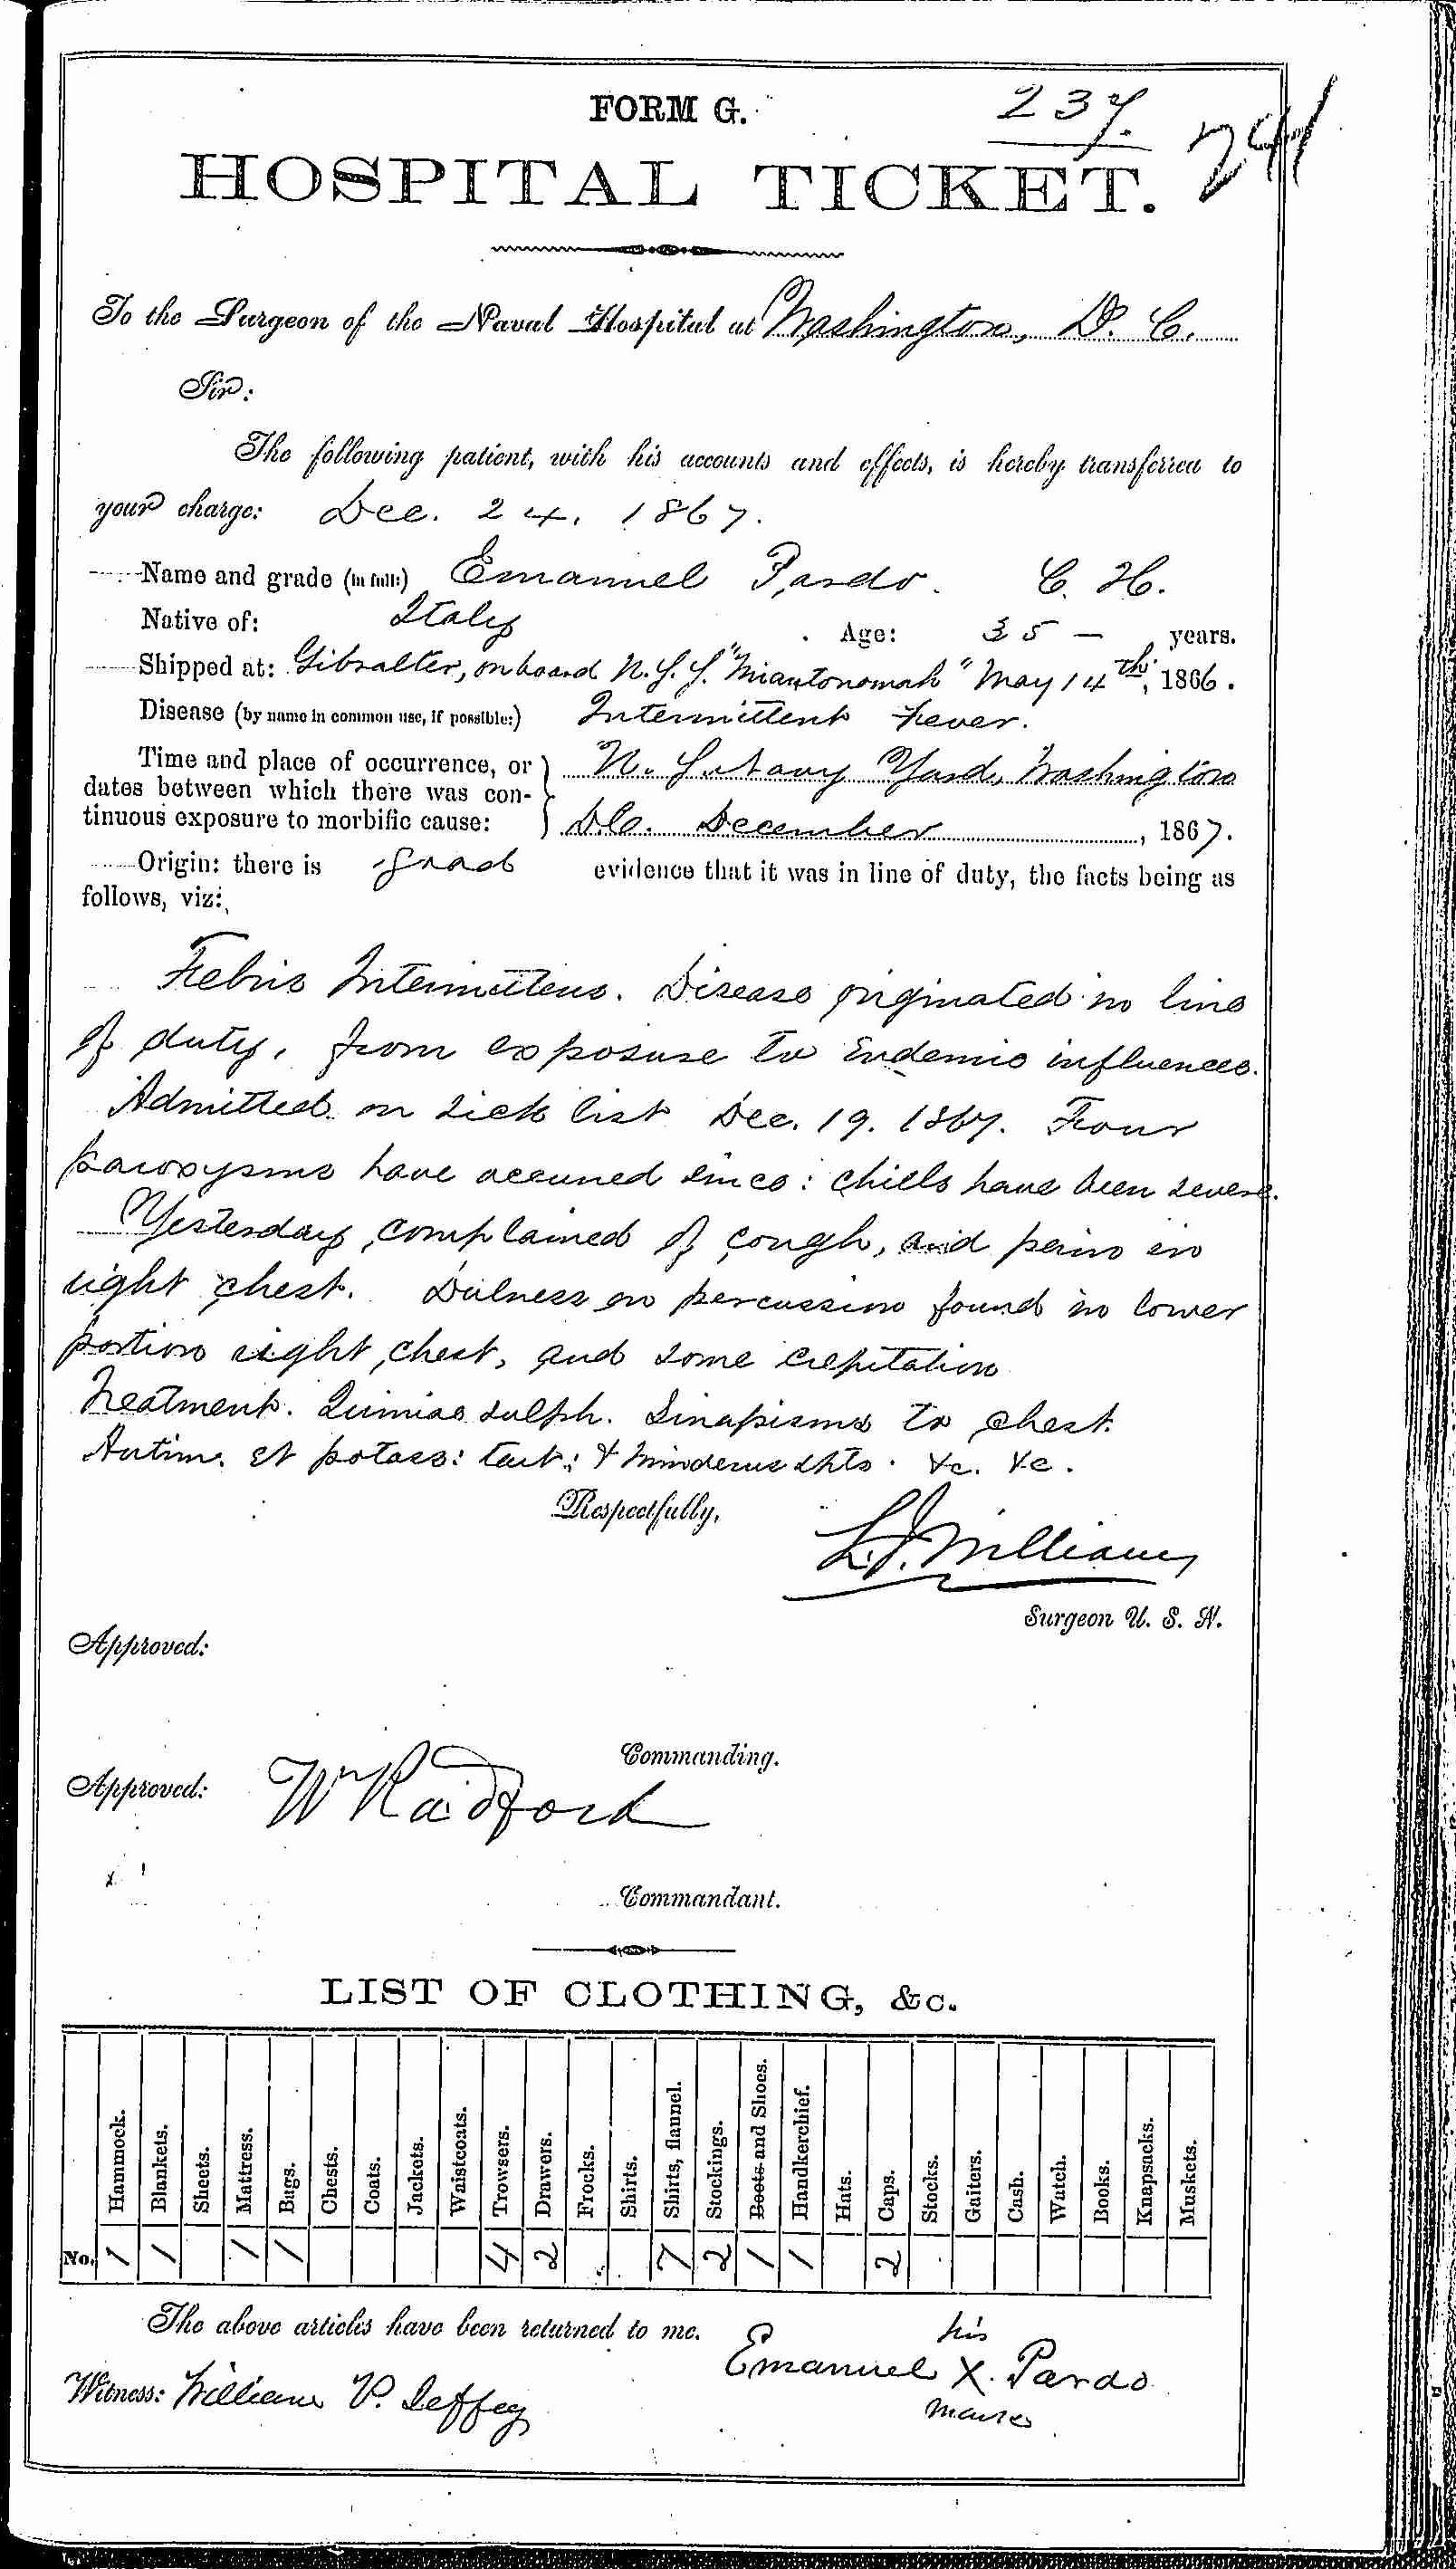 Entry for Emanuel Pardo (page 1 of 2) in the log Hospital Tickets and Case Papers - Naval Hospital - Washington, D.C. - 1866-68